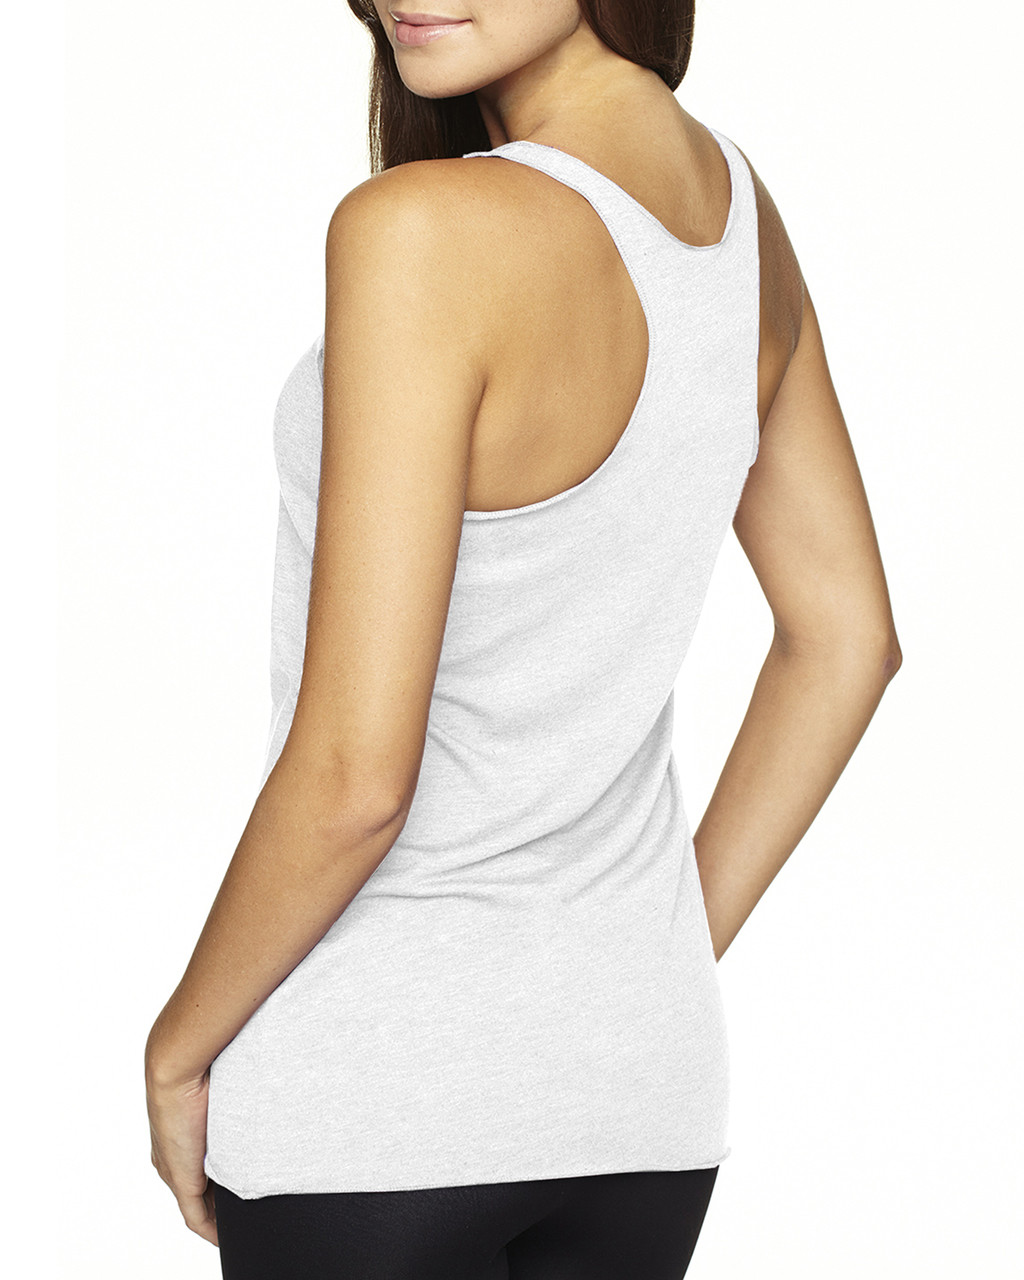 Heather White-back 6733 Next Level Tri-Blend Racerback Tank Top | Blankclothing.ca